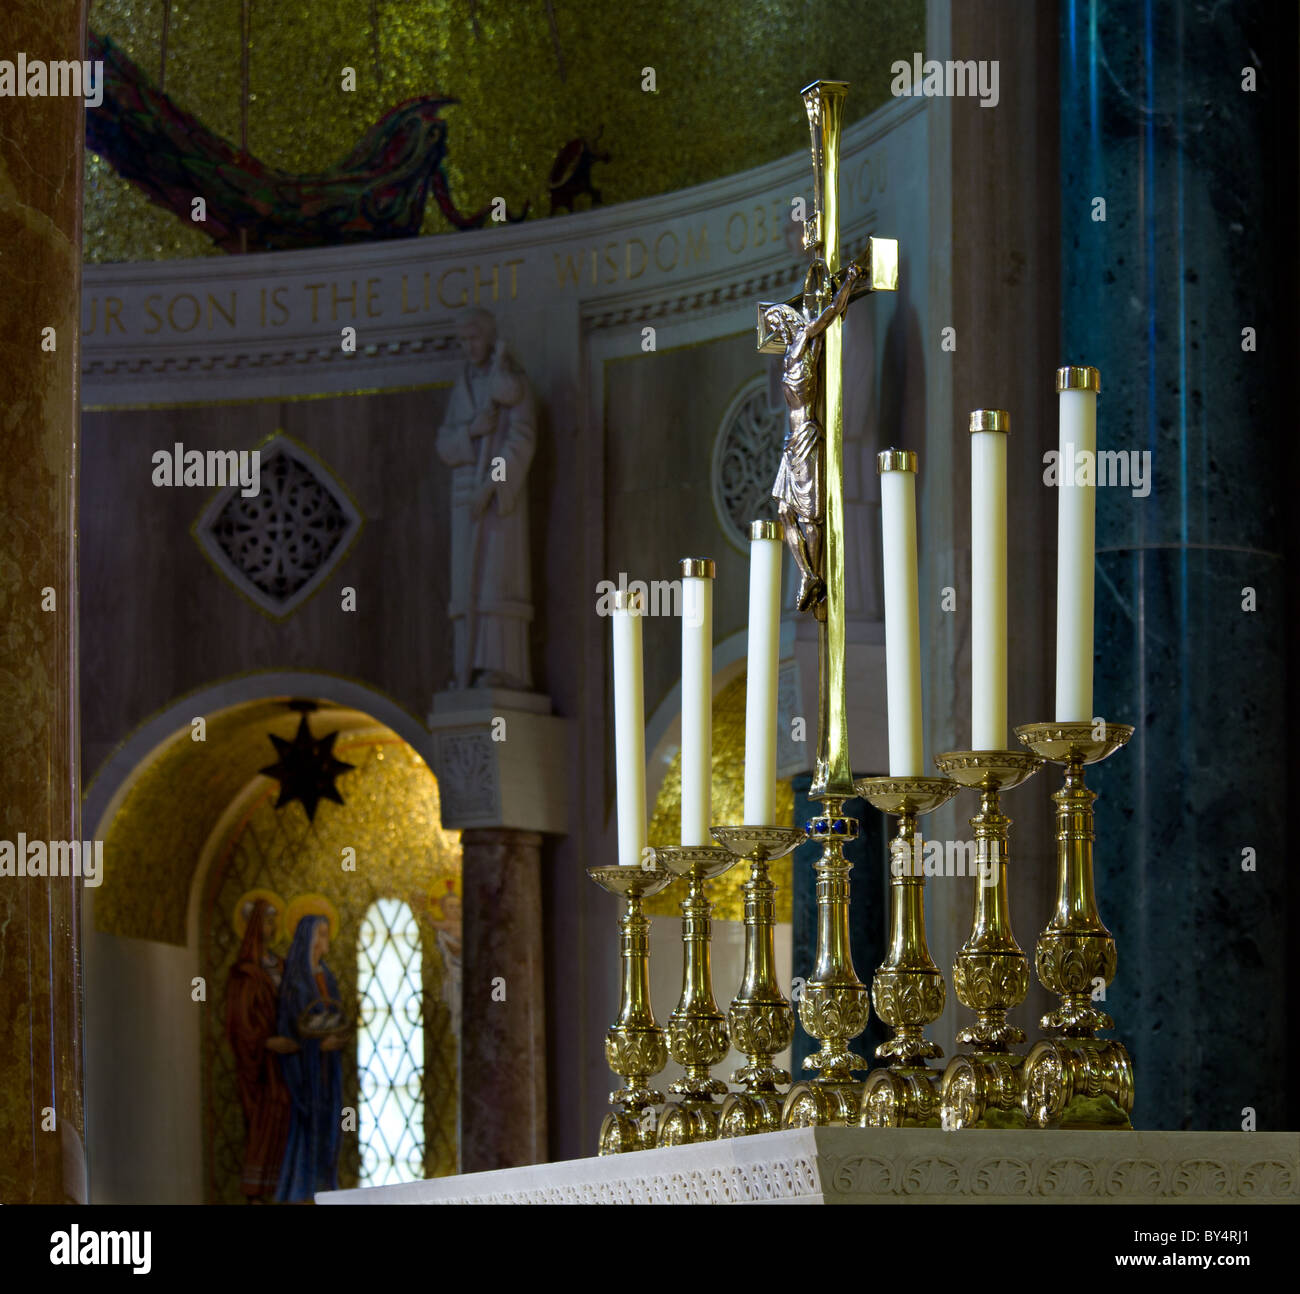 Set of ornate carved candlesticks on altar illuminated by sunlight with the darker alcoves of the church behind Stock Photo